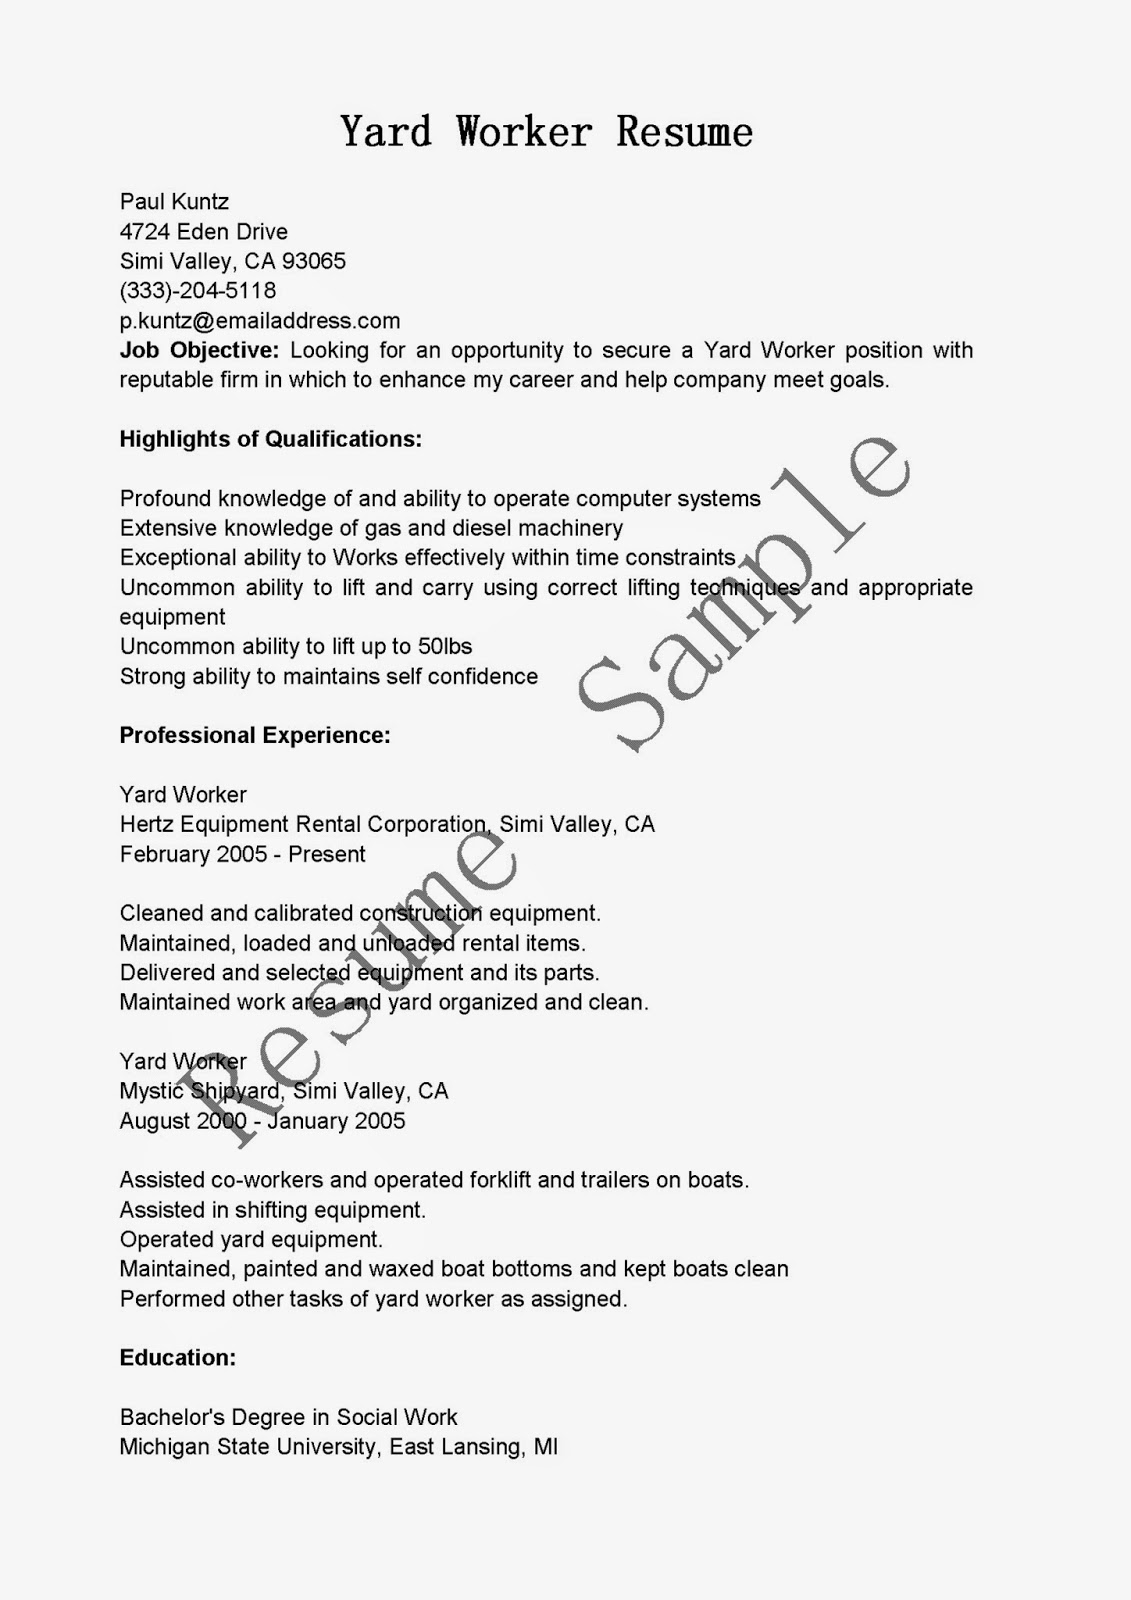 resume samples  yard worker resume sample